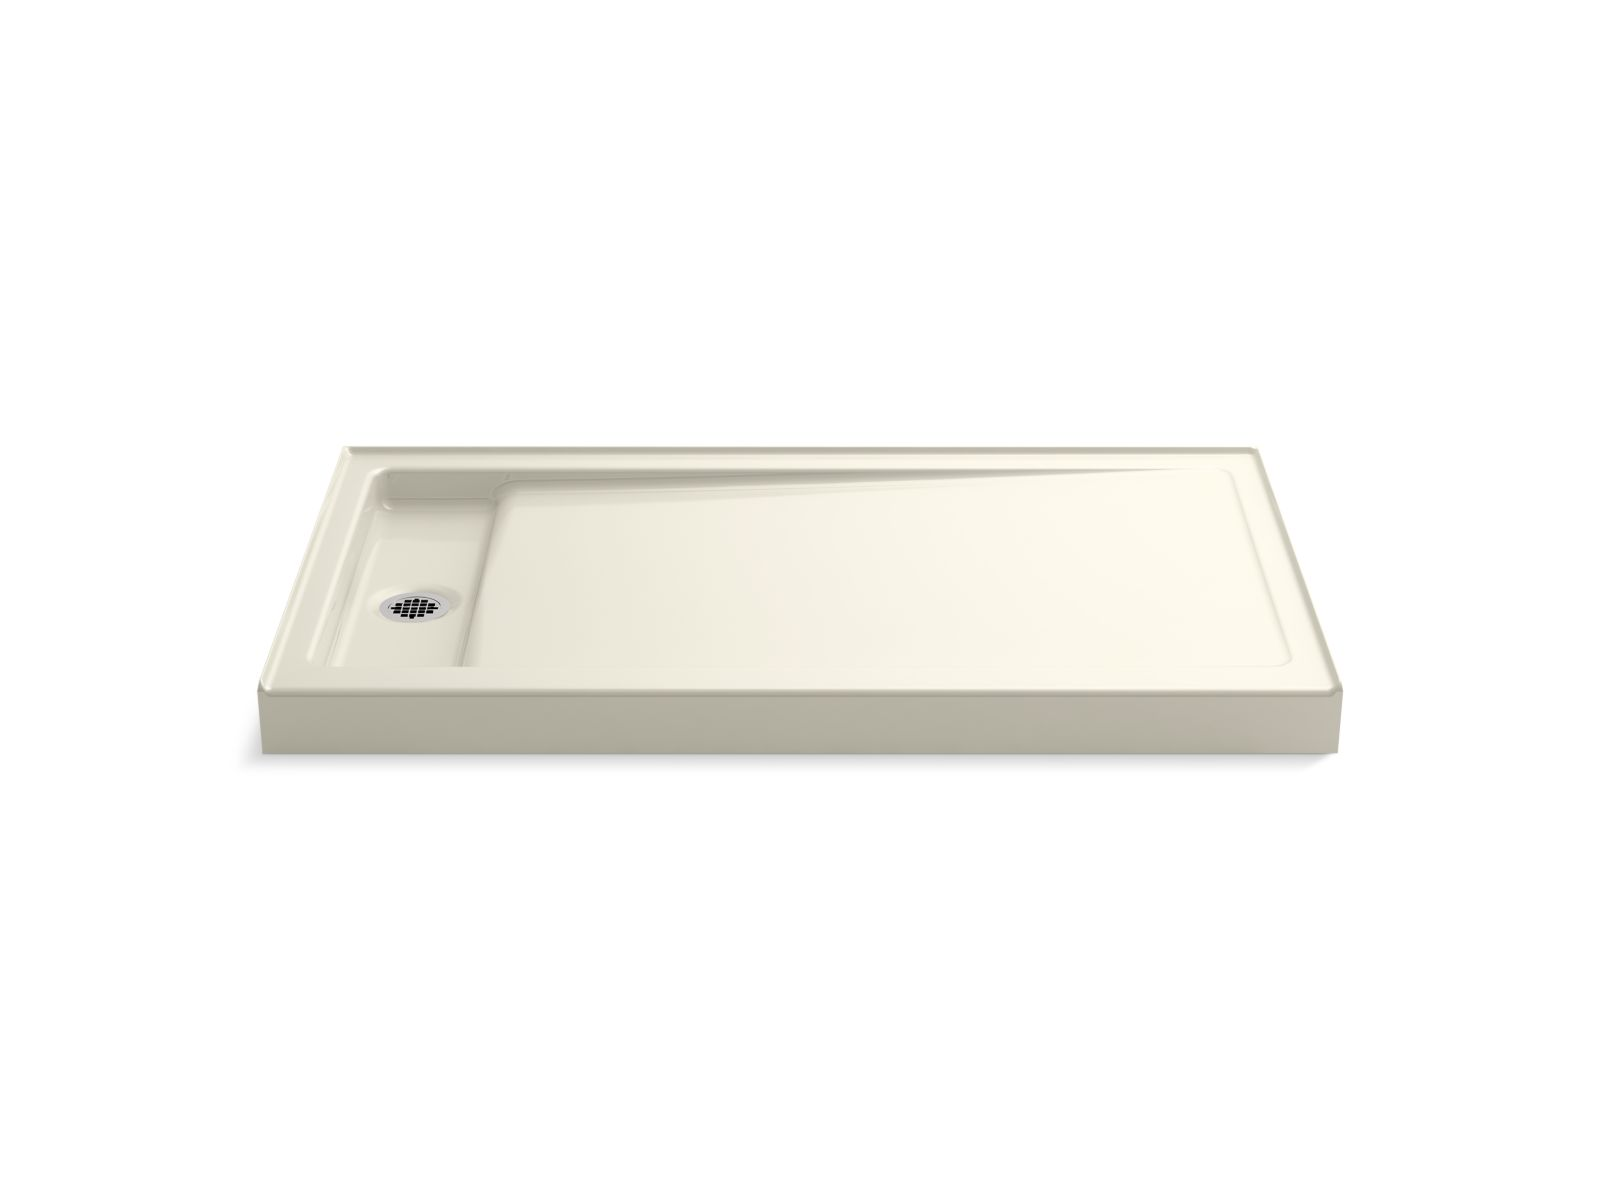 "Kohler Bellwether® K-9177-96 60"" x 34"" single-threshold shower base with left center drain Biscuit"